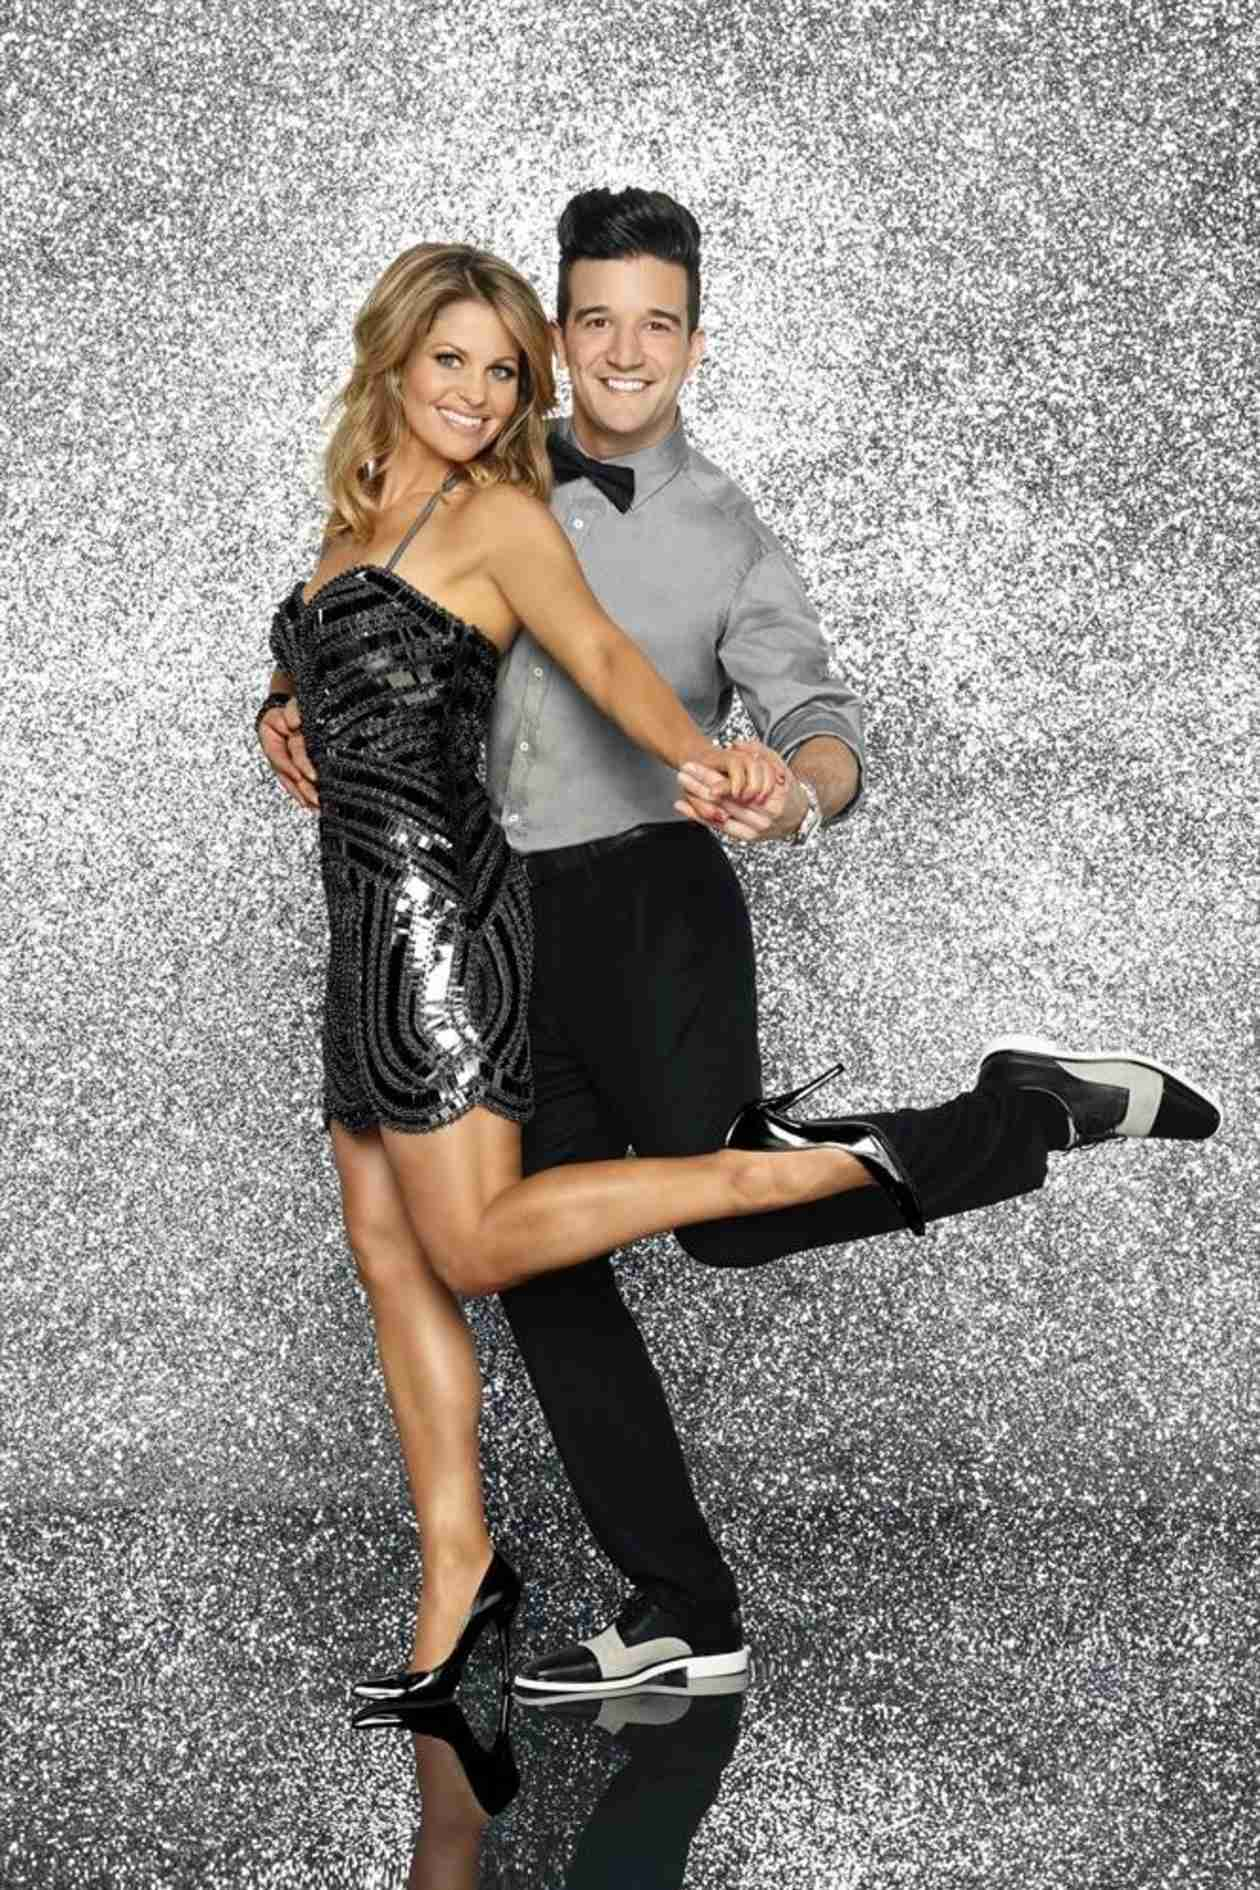 Dancing With the Stars 2014: Candace Cameron Bure and Tony Dovolani's Week 4 Quickstep (VIDEO)